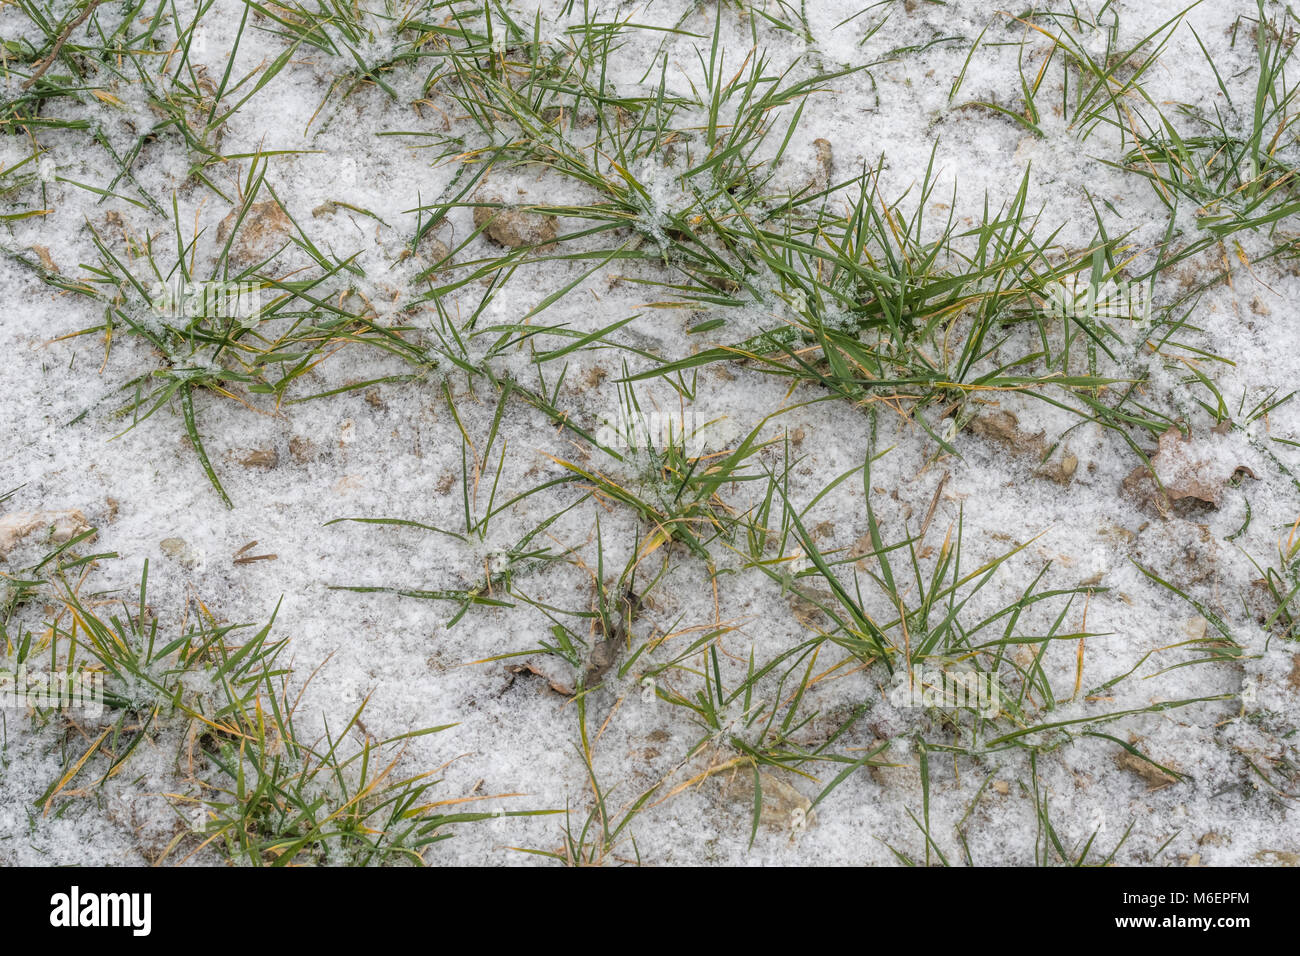 Snow covered winter wheat leaves during the 2018 Beast from the East polar vortex snow conditions which caused widespread - Stock Image